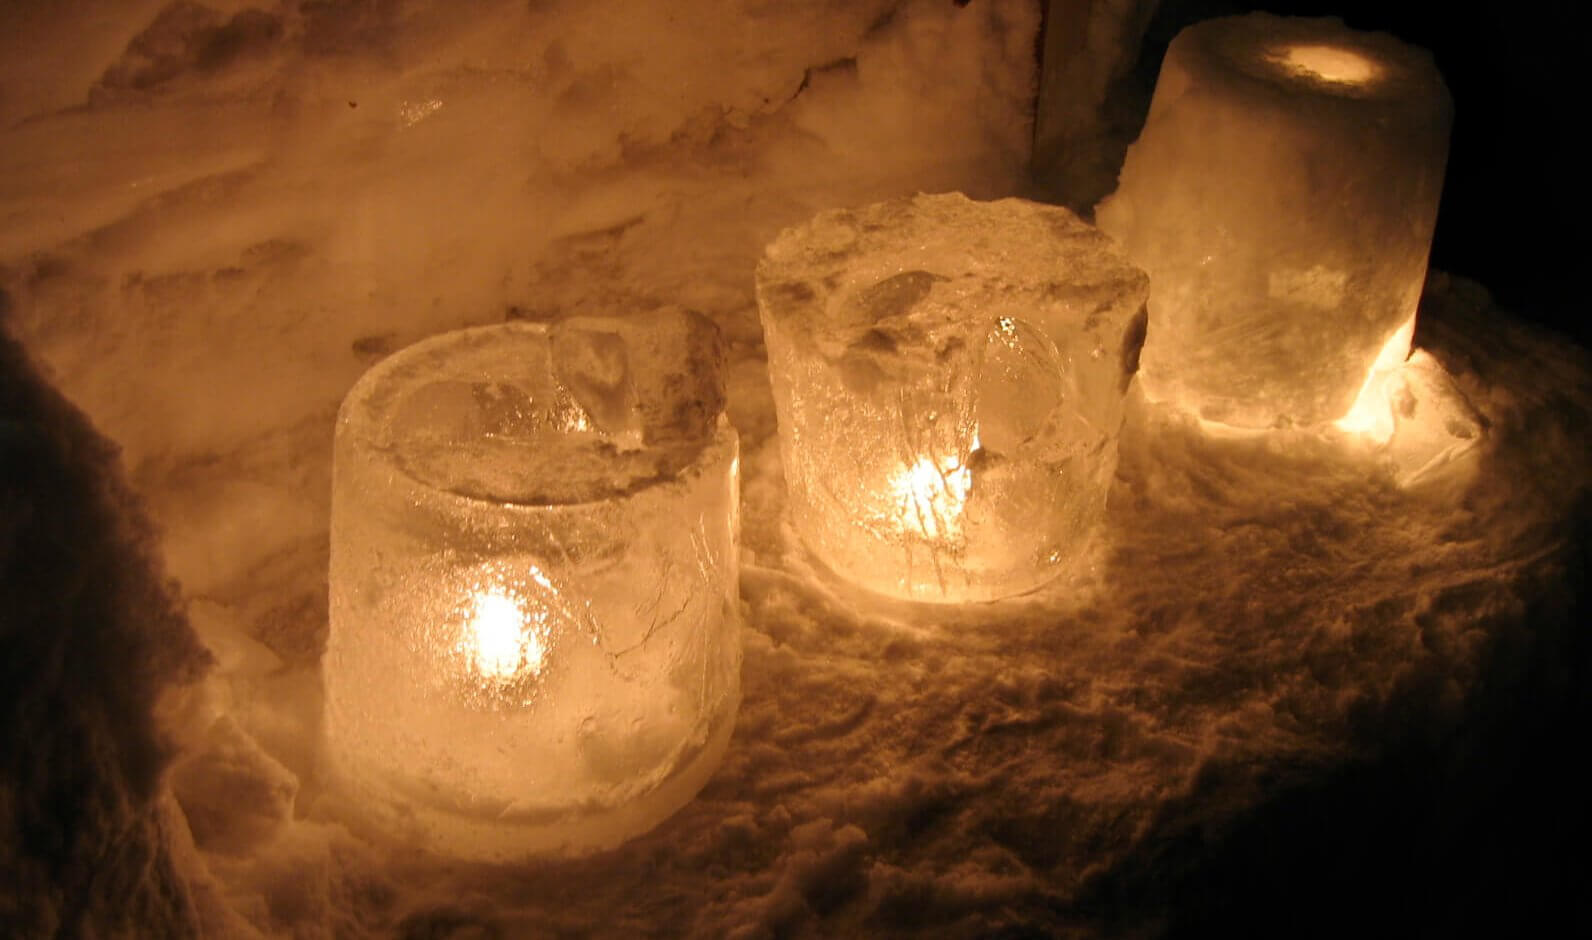 Candles in ice - image by Goodmami https://www.flickr.com/photos/goodmami/115770648